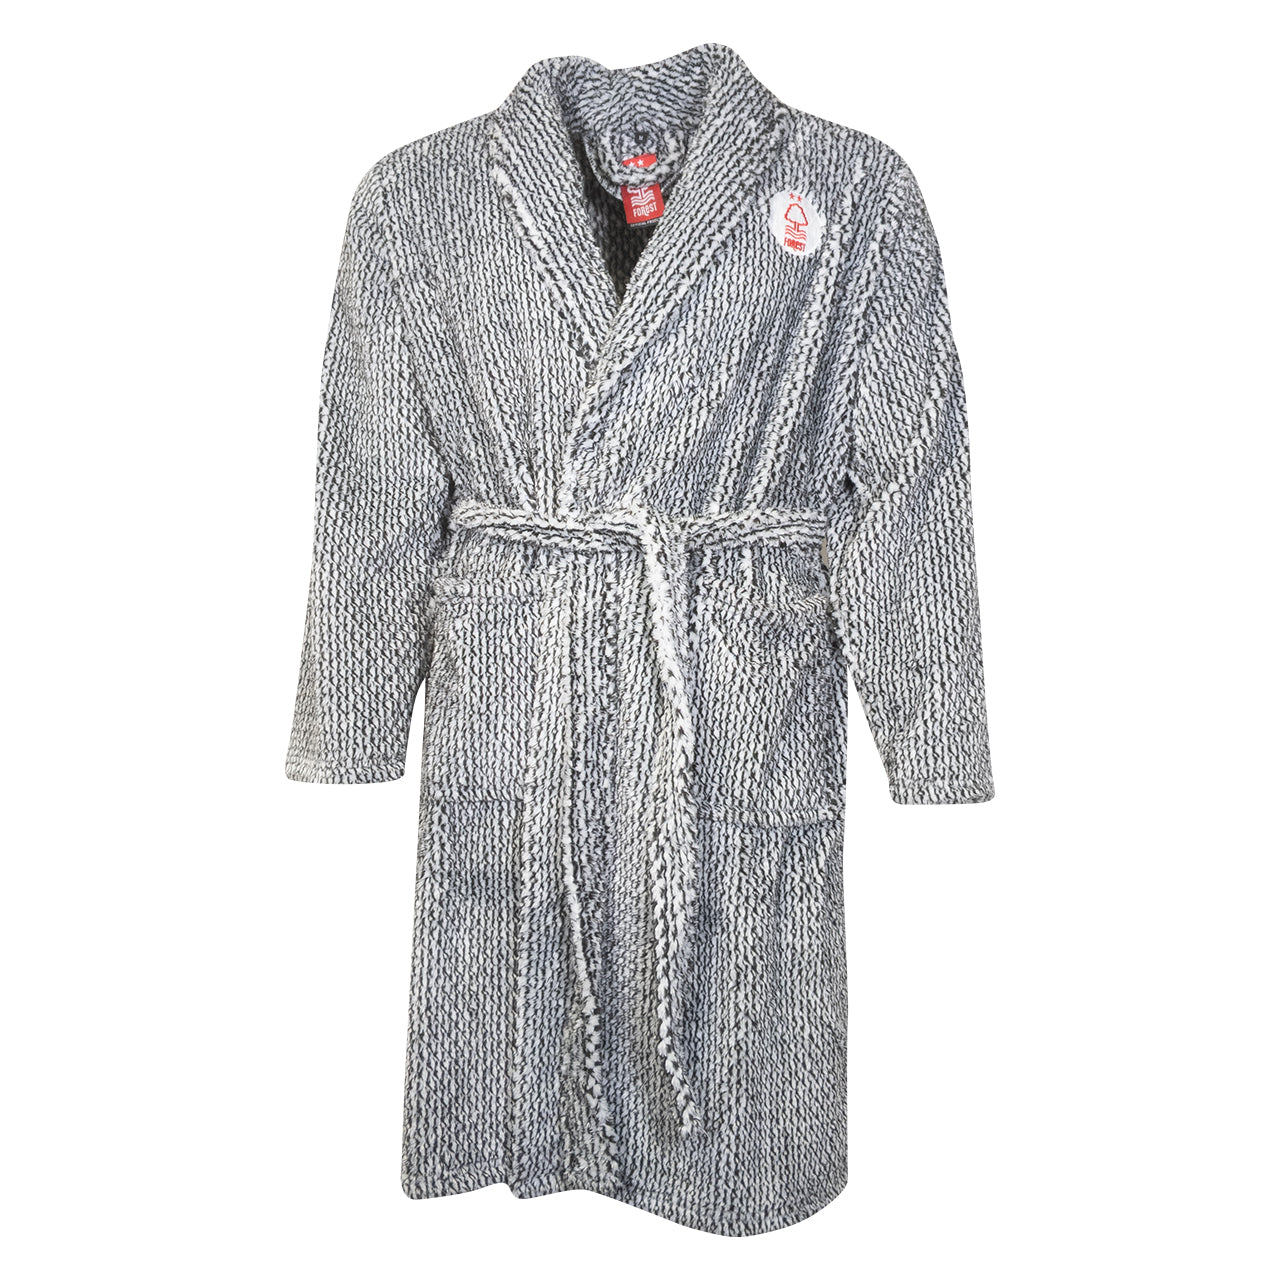 NFFC Men's Saturn Dressing Gown